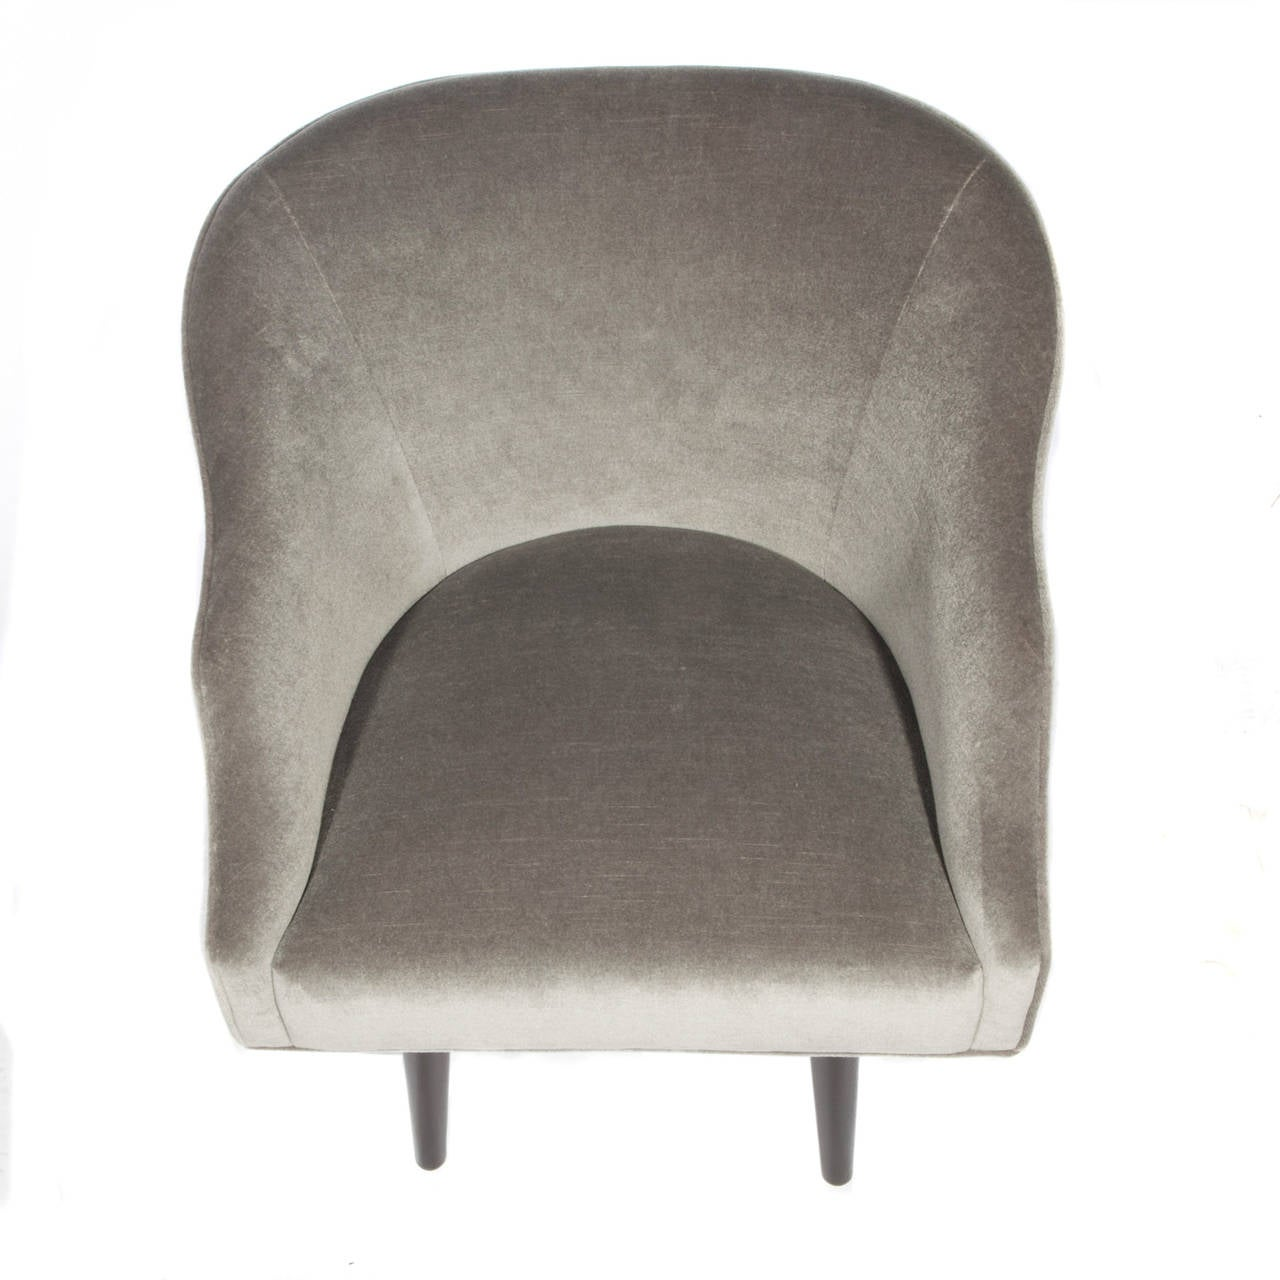 Elegant pair of 1960s armchairs with sculptural, integrated arms, reupholstered in a rich grey mohair. Swivel and return mechanism. Gold